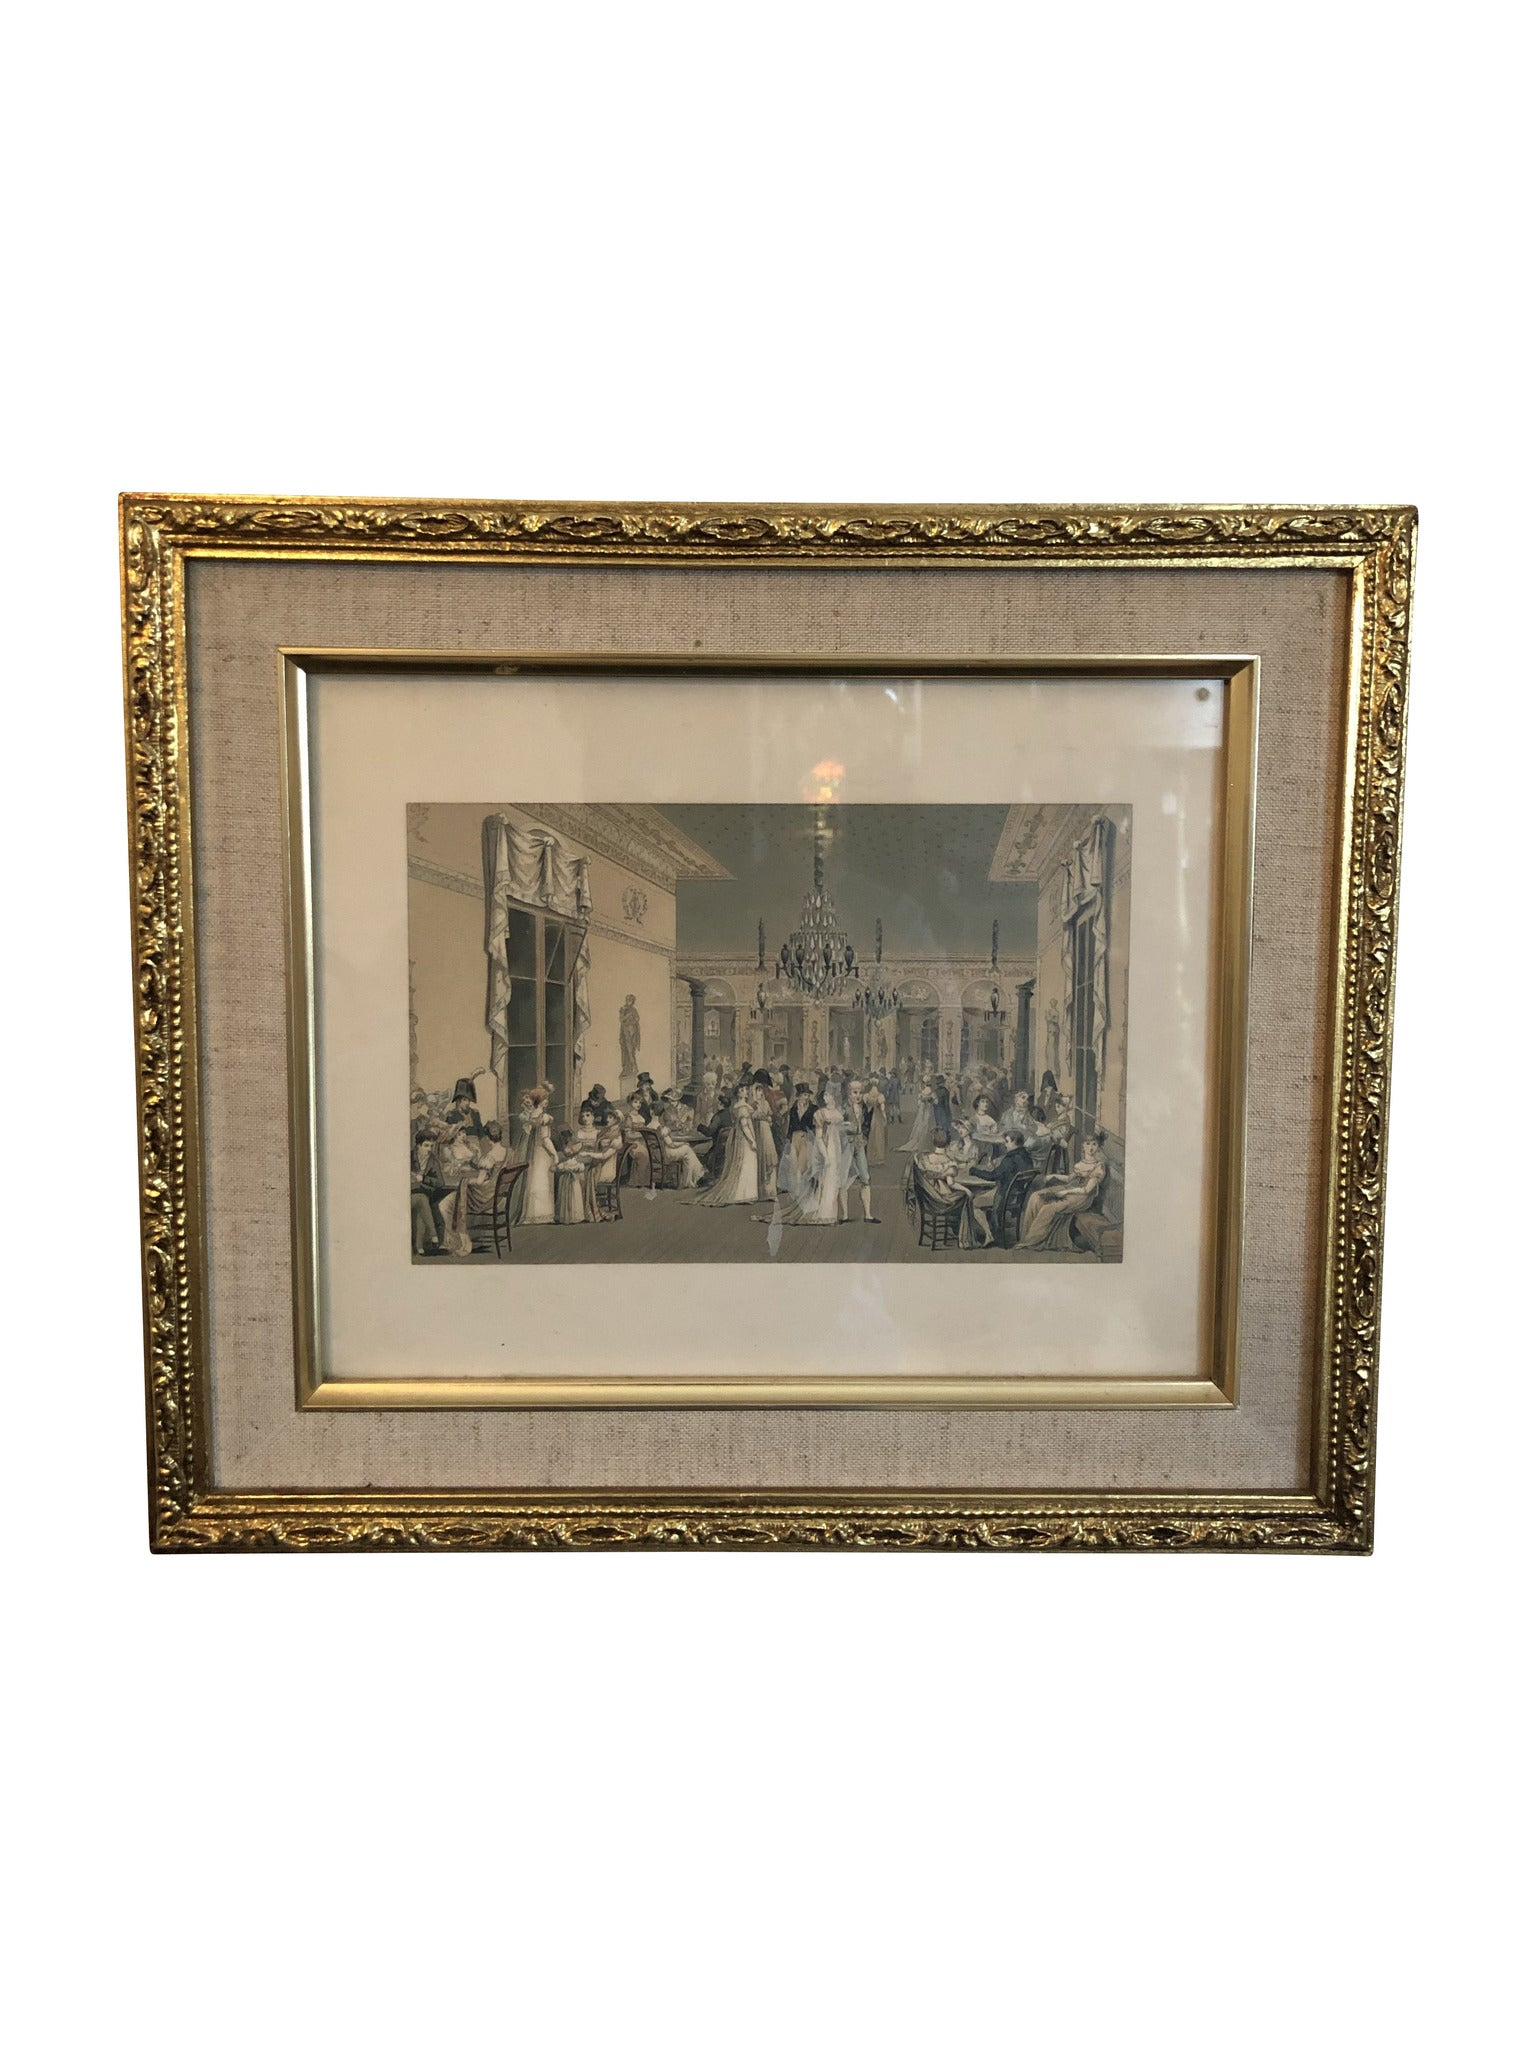 French Ballroom with Merriment Framed Art